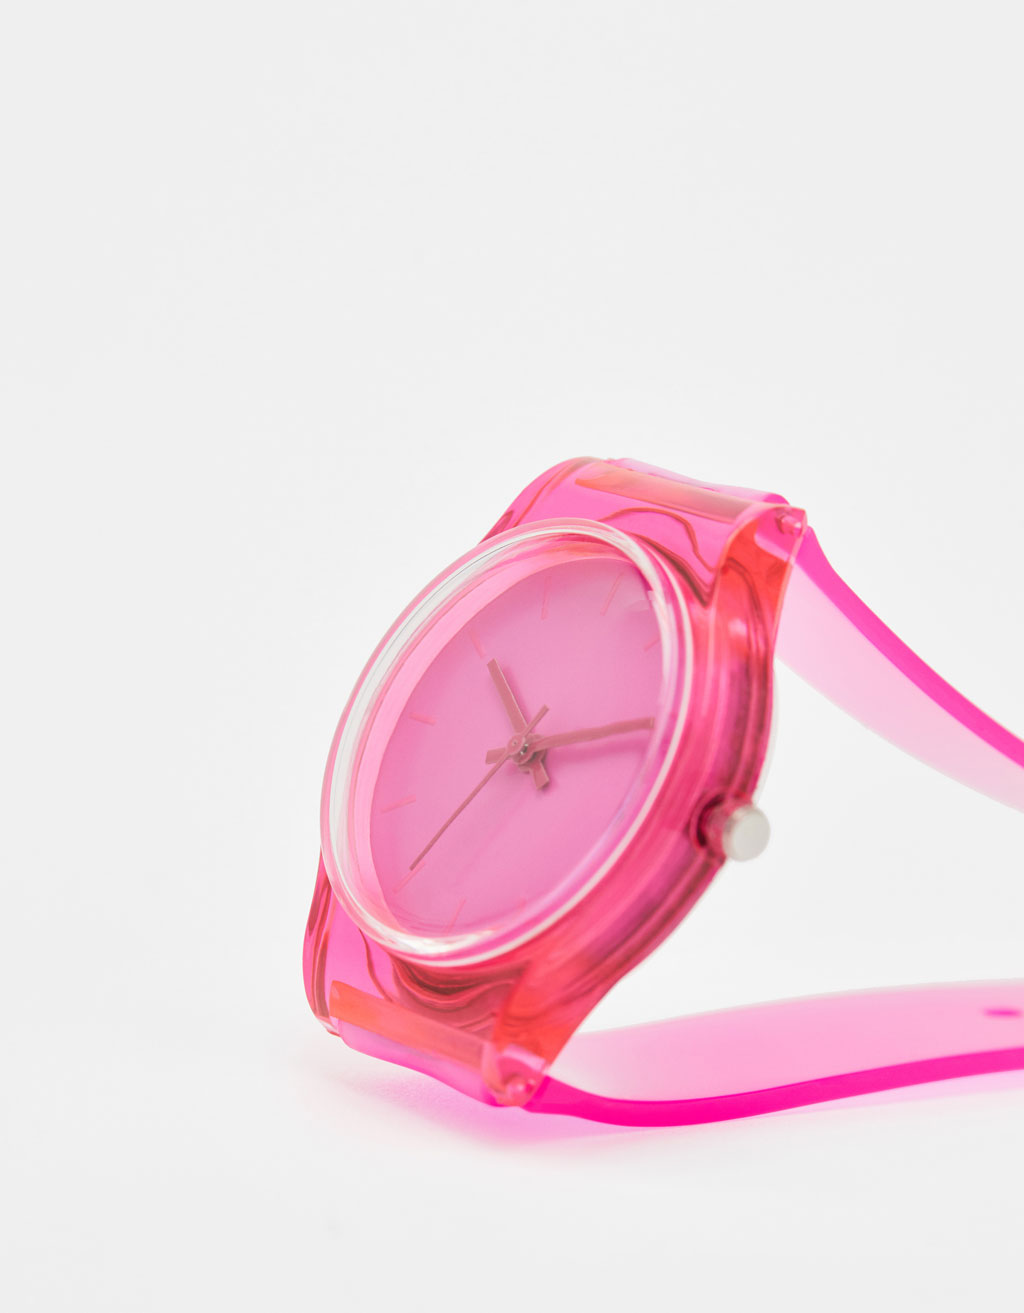 Neon analogue watch